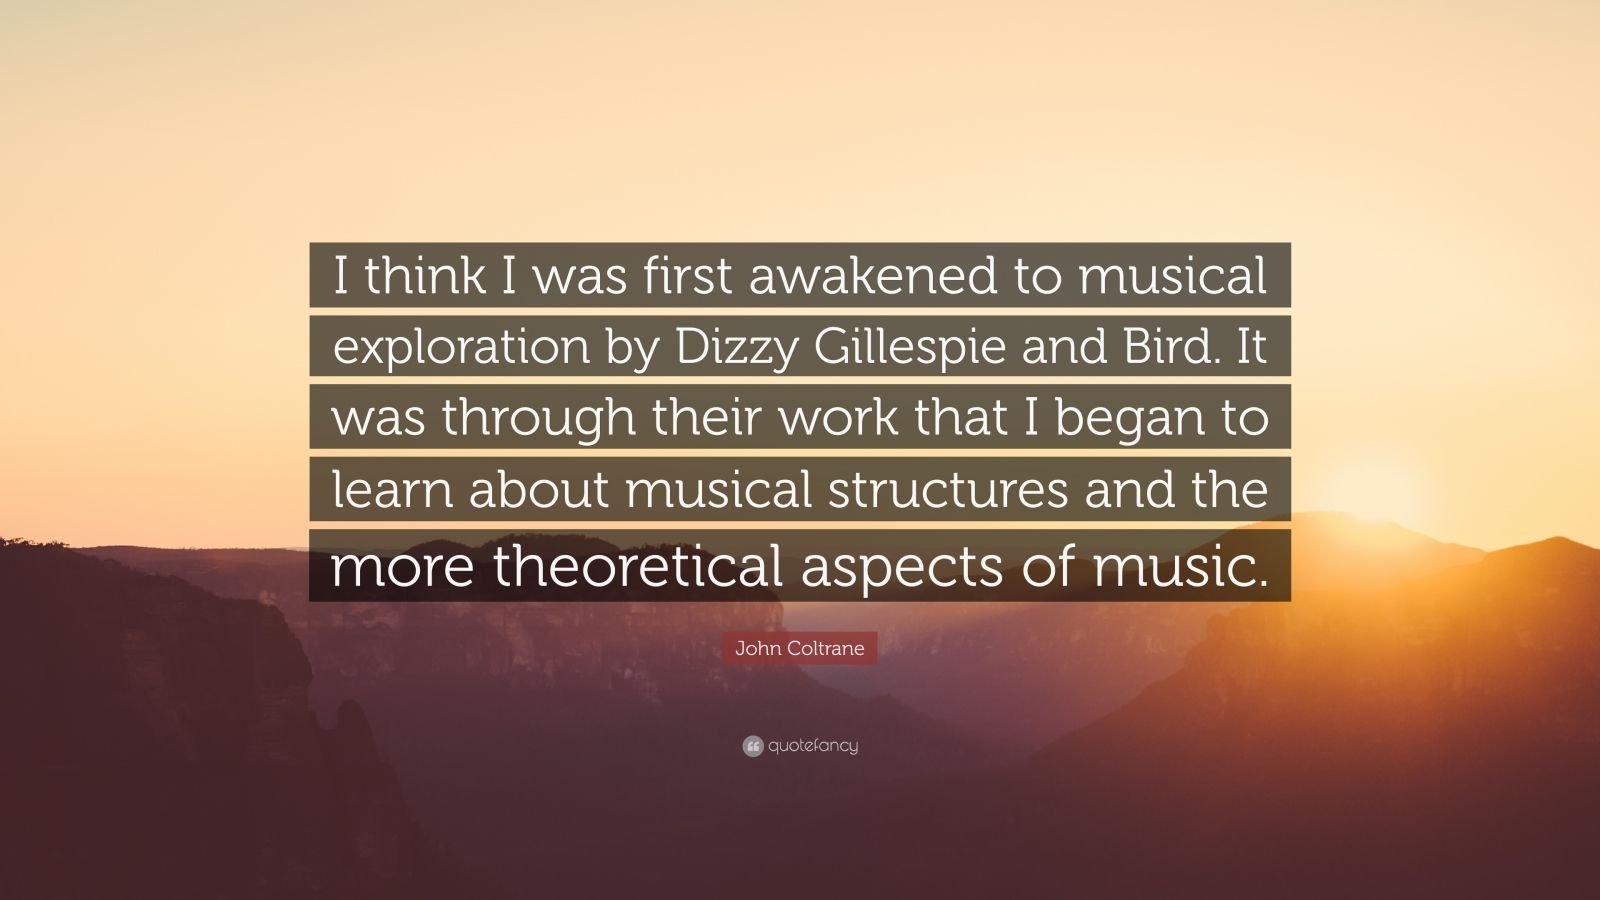 """John Coltrane Quote: """"I think I was first awakened to musical exploration by Dizzy Gillespie and Bird. It was through their work that I began to learn about musical structures and the more theoretical aspects of music."""""""